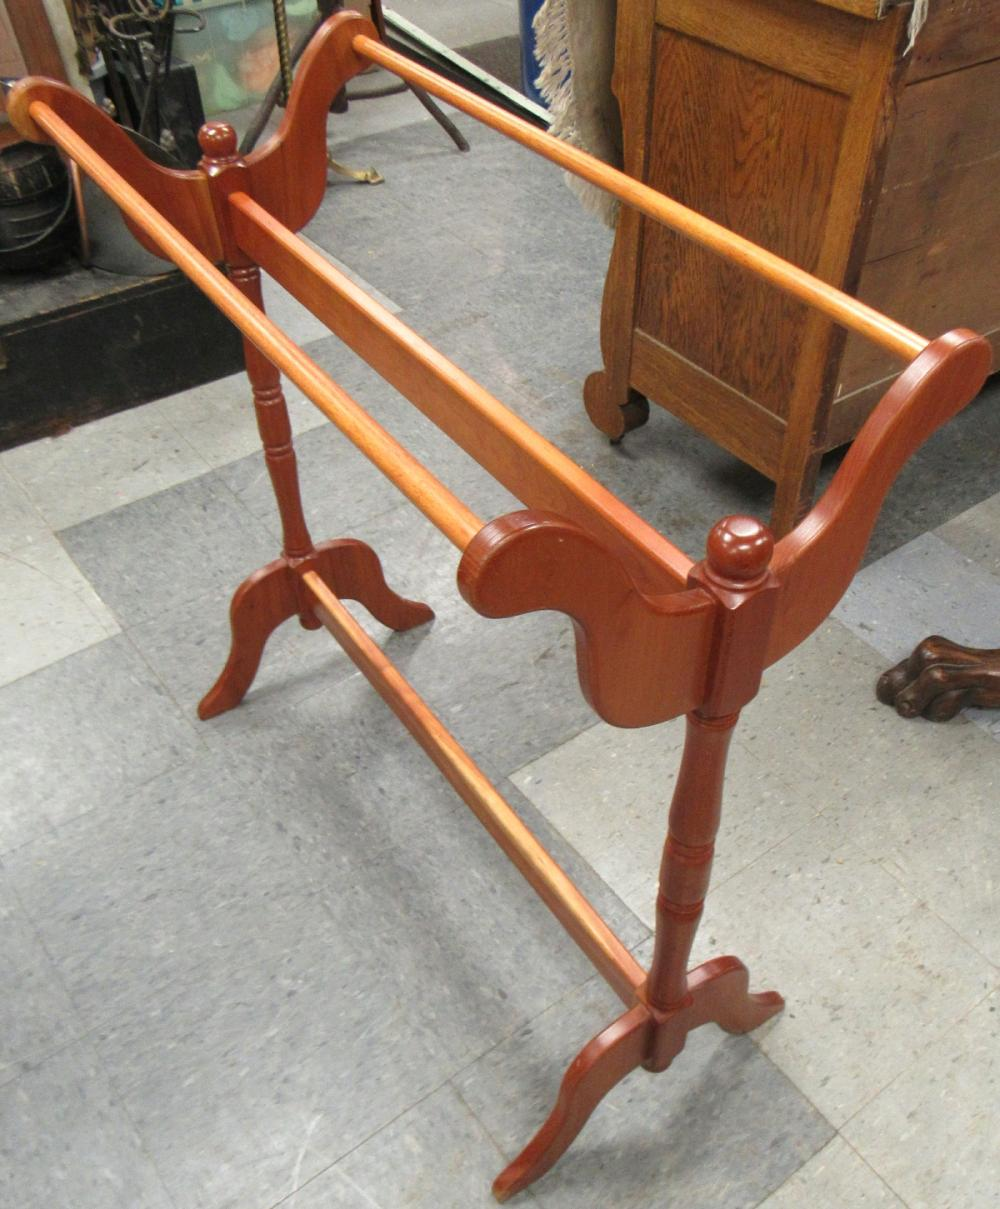 "Lot 17: Amish Made Cherry Quilt Rack, 33 1/2"" x 15"" x 34 1/2"" ,All Responsibility for Shipping will be the Successful Bidder. You must arrange for pickup directly or by a shipper within 7 days after sale."